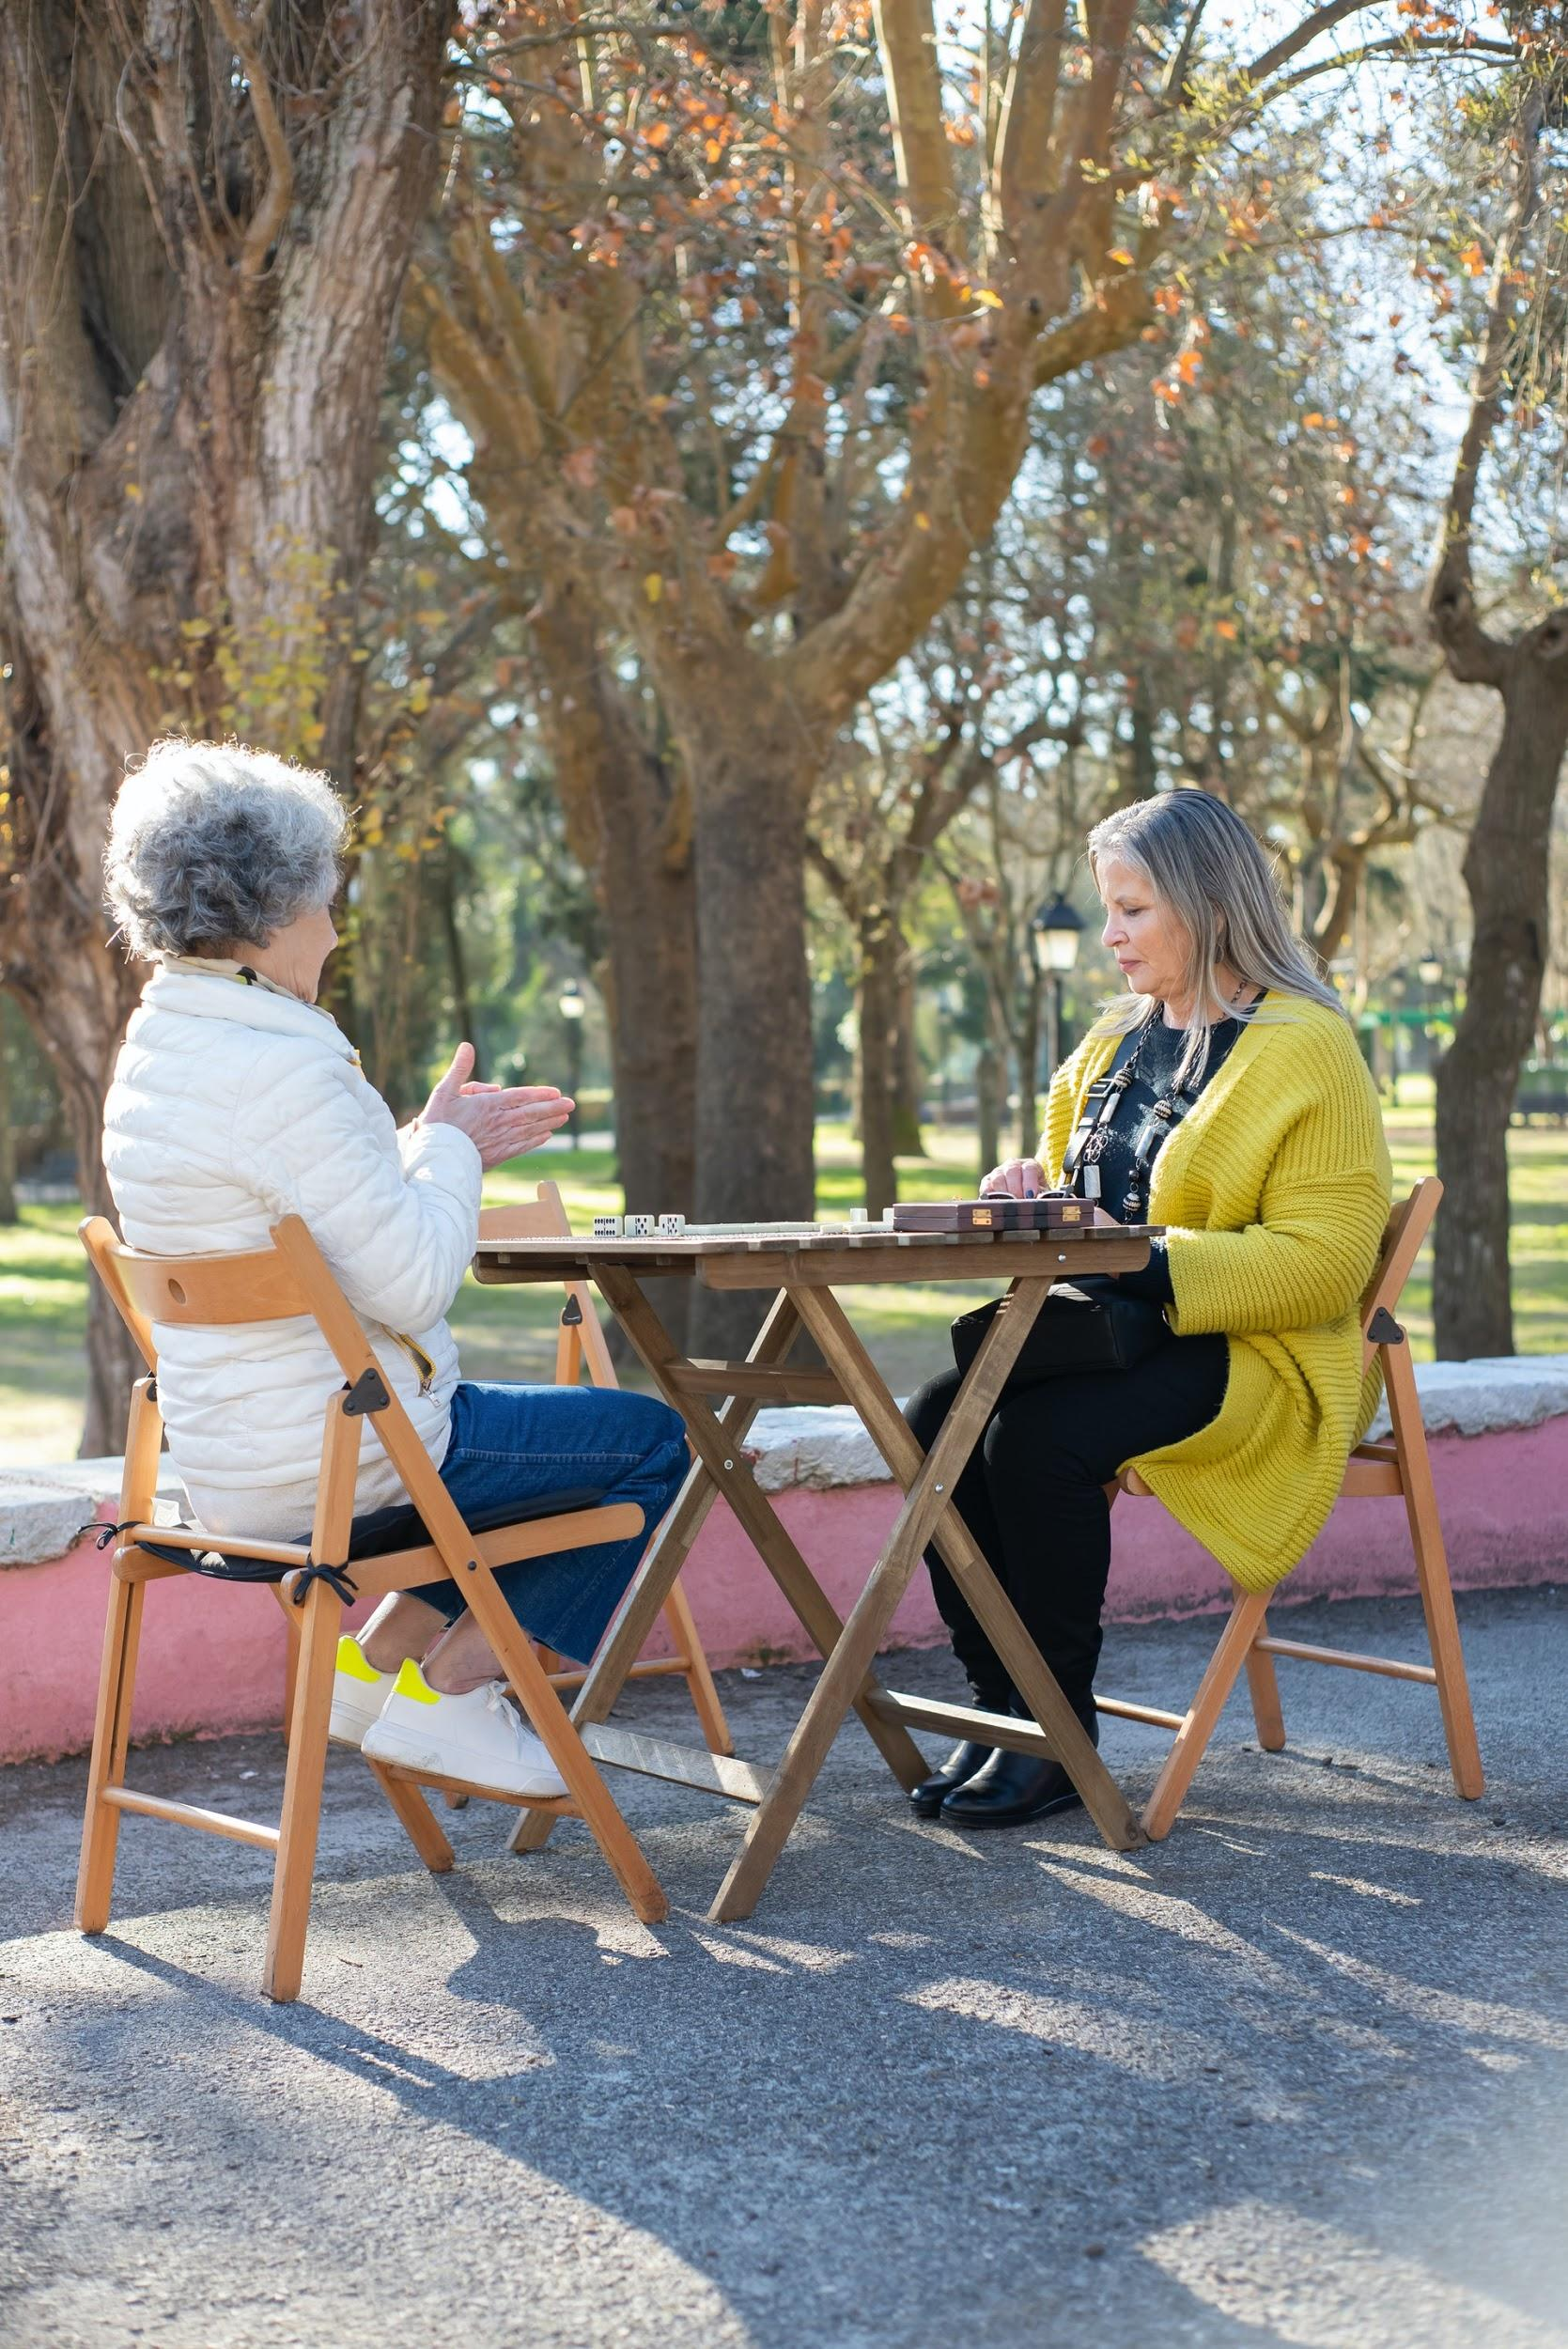 activities to help seniors find community and avoid social isolation